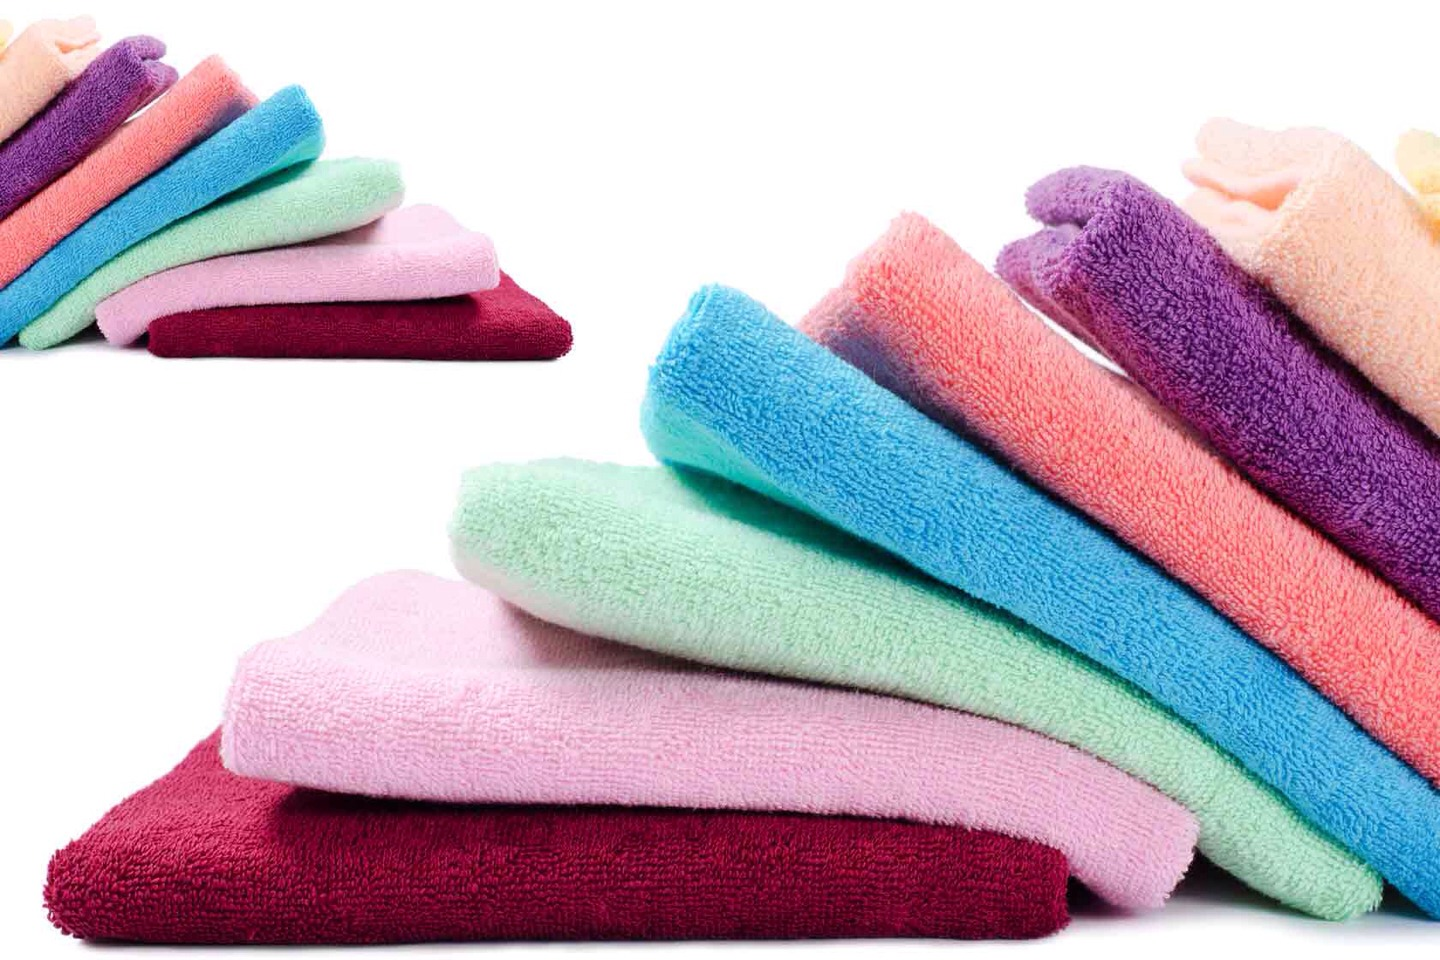 Some small towels so you can lie down and sunbathe